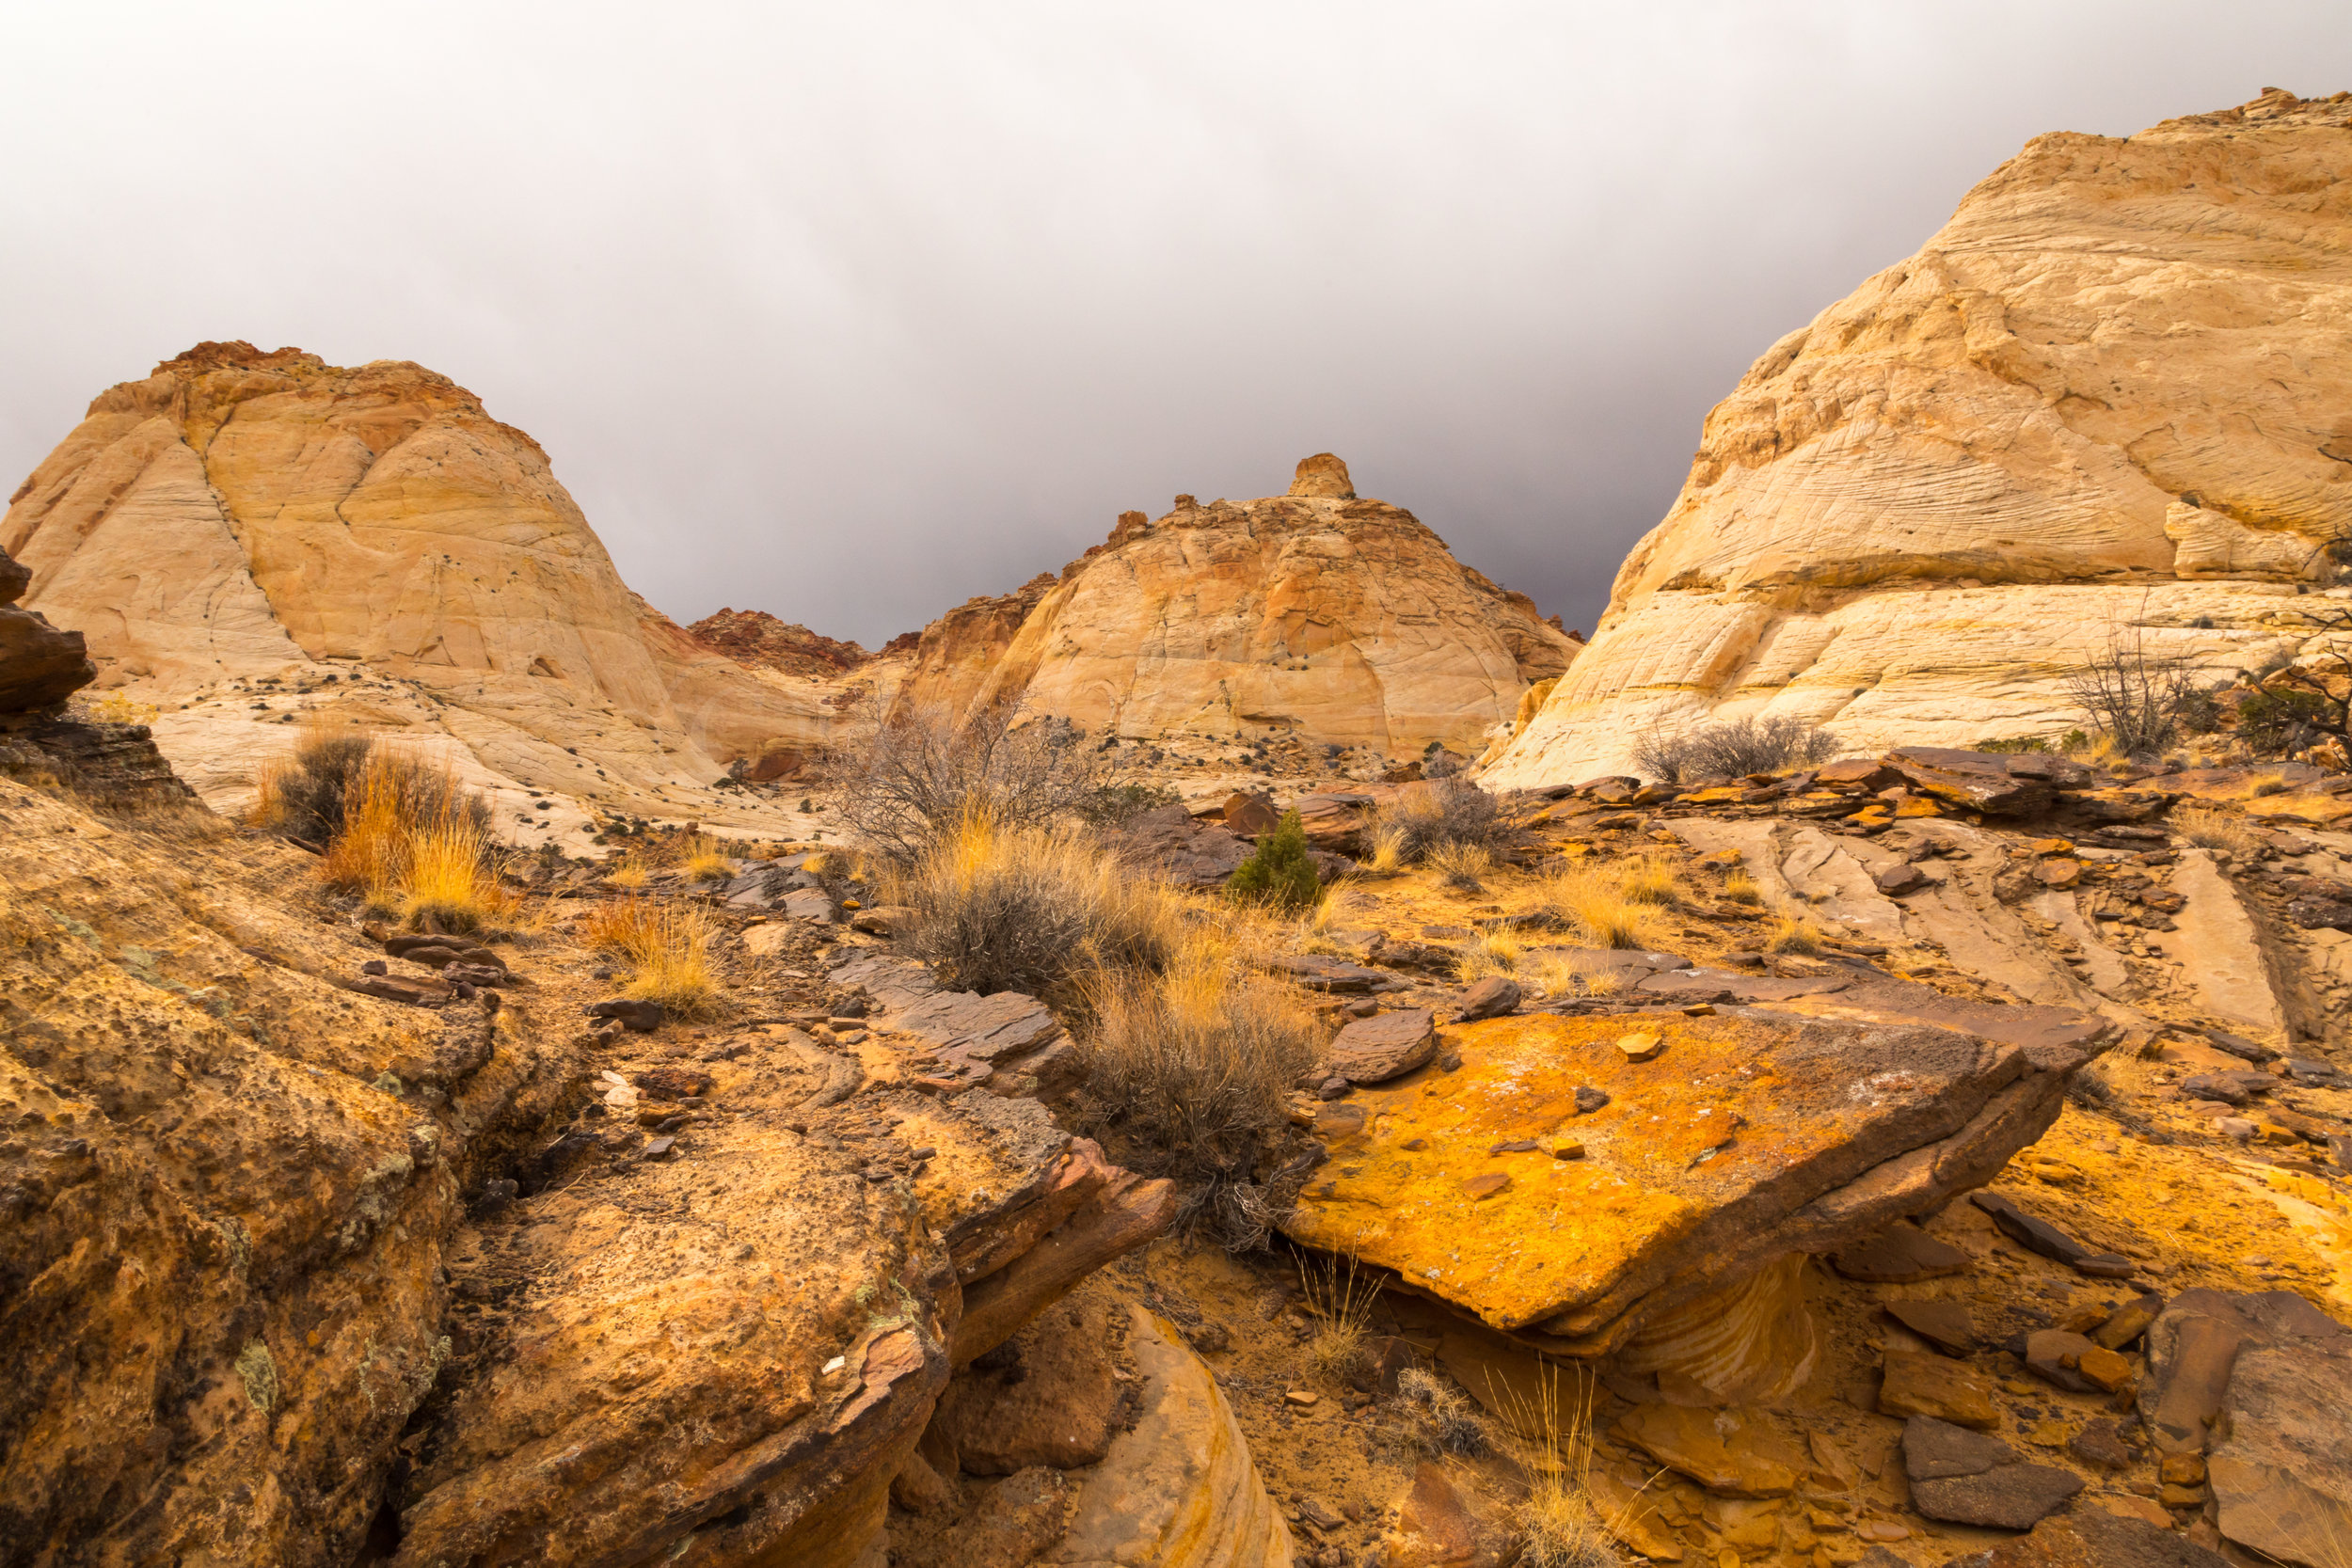 Capitol Reef National Park, Image # 0358